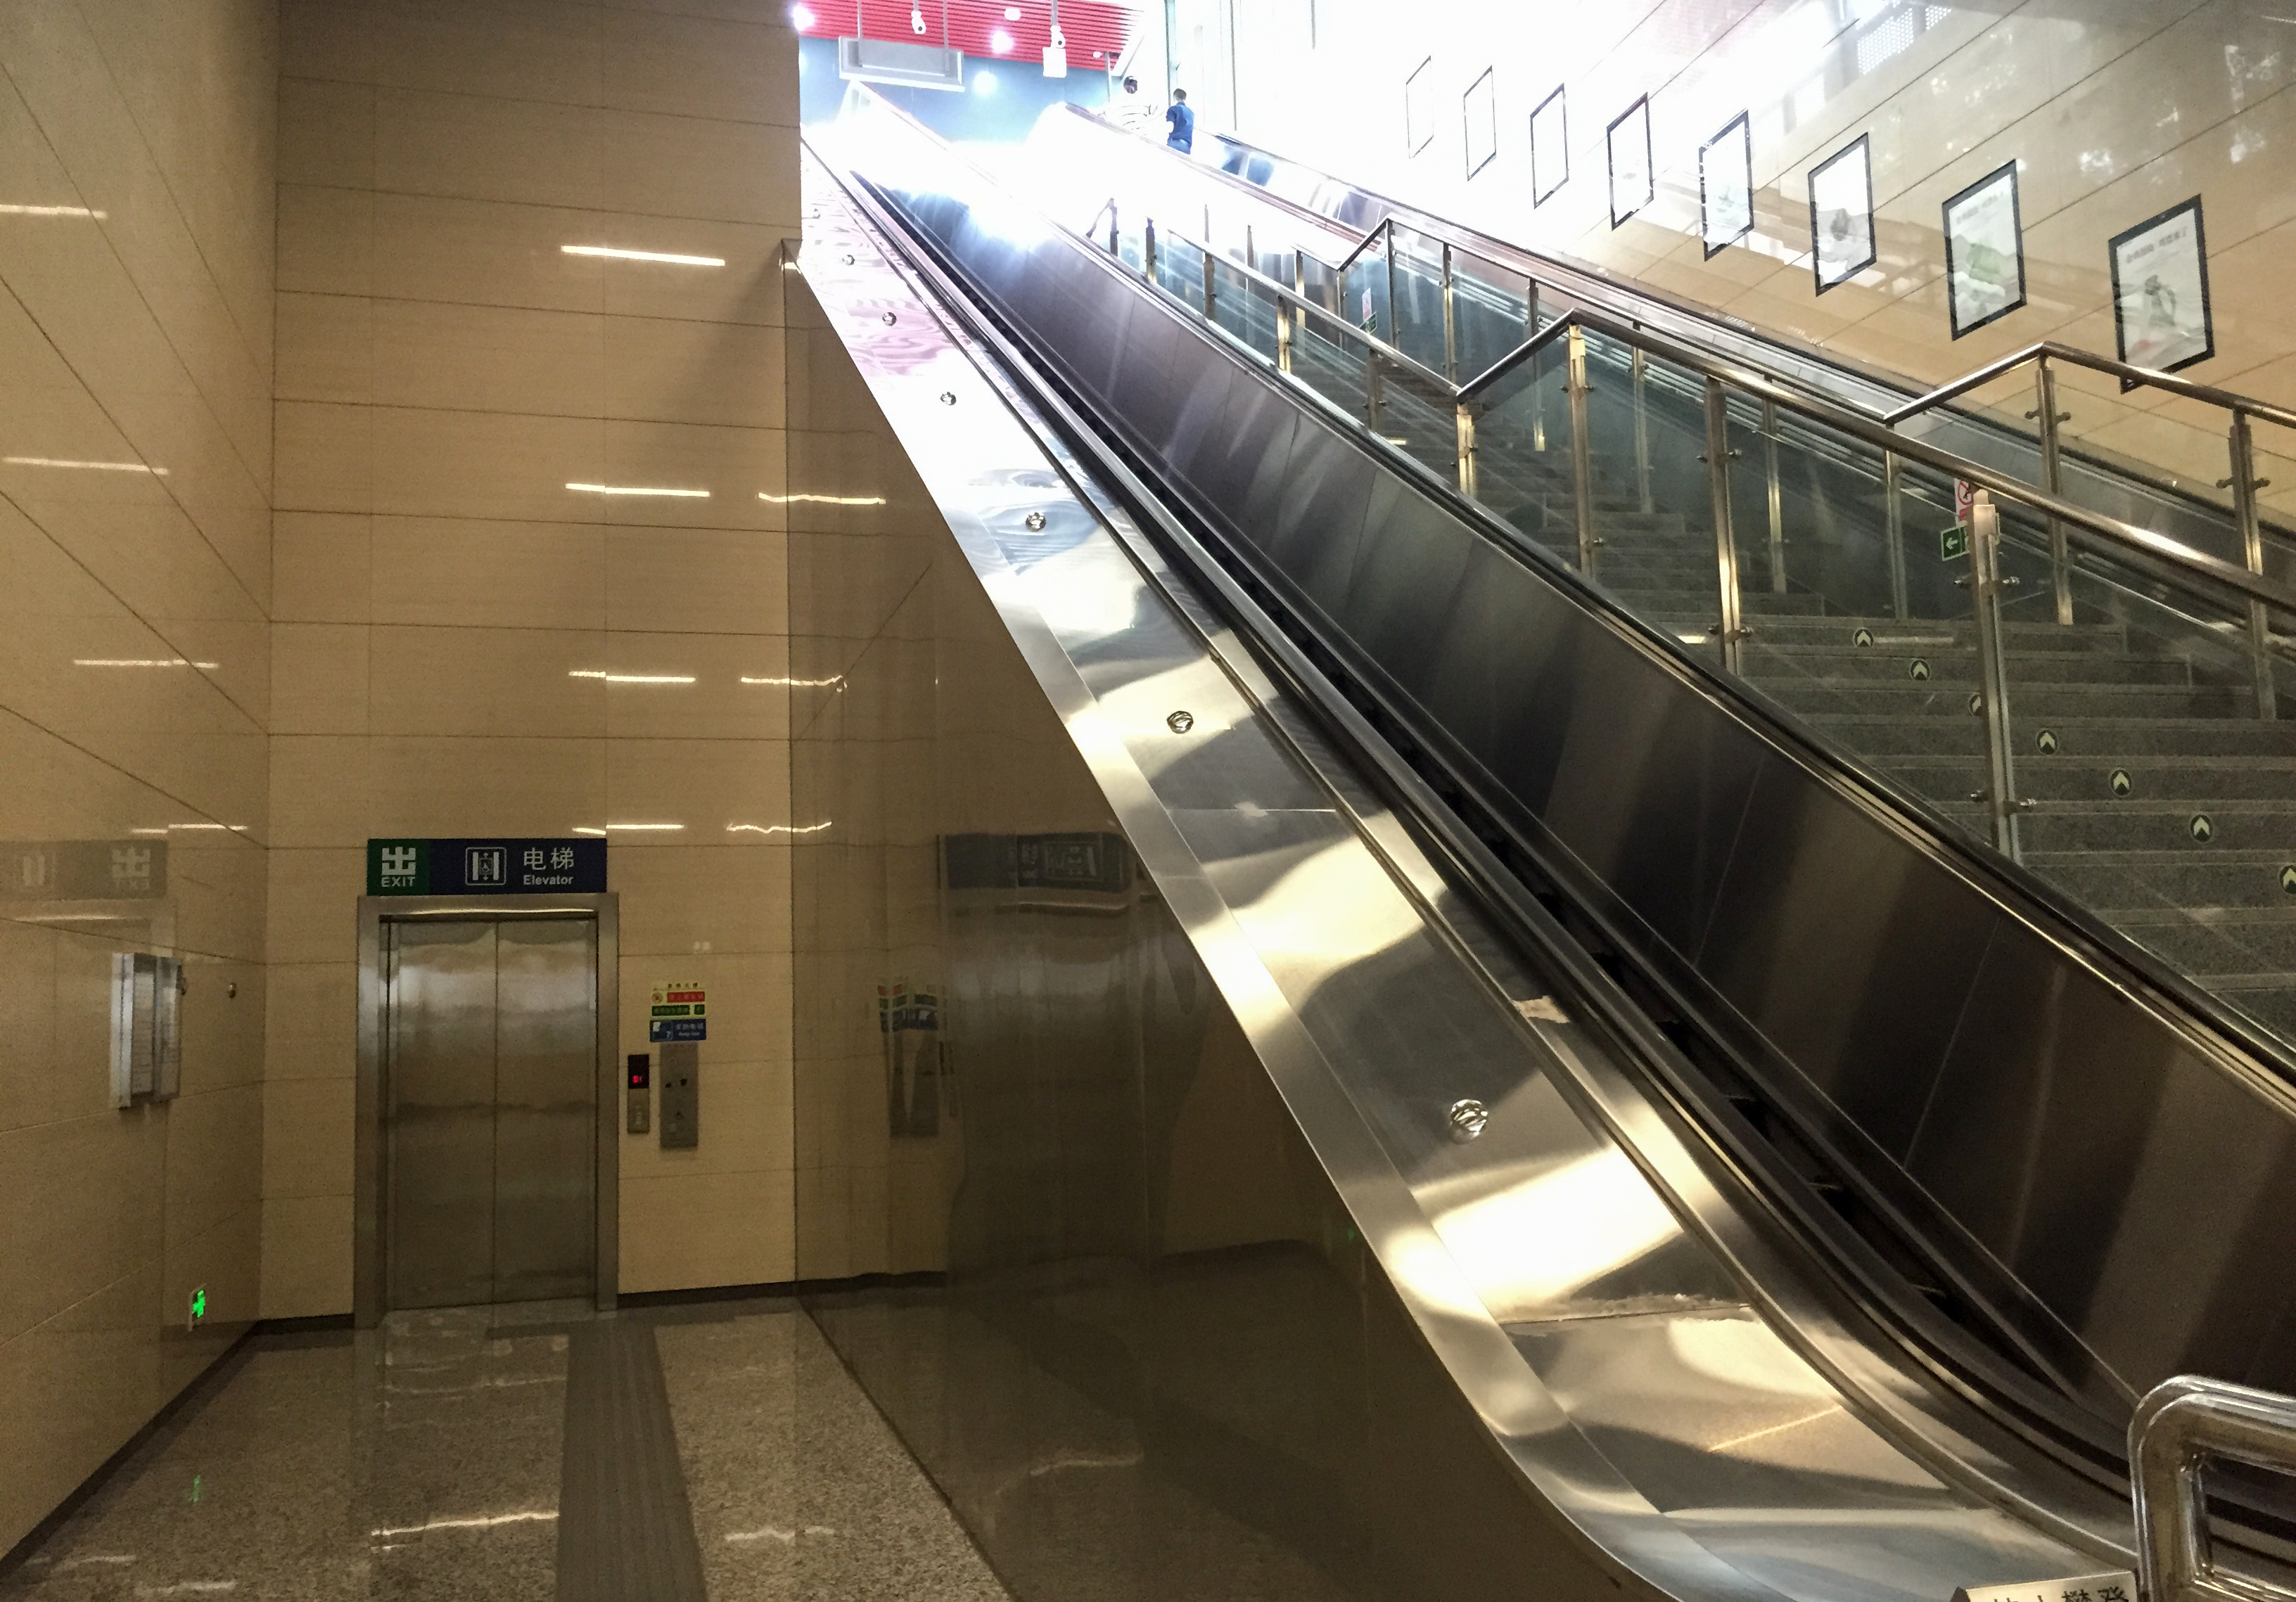 Lift_and_escalators_at_the_exit_D_of_Wenyanglu_Station_(20170618120154)